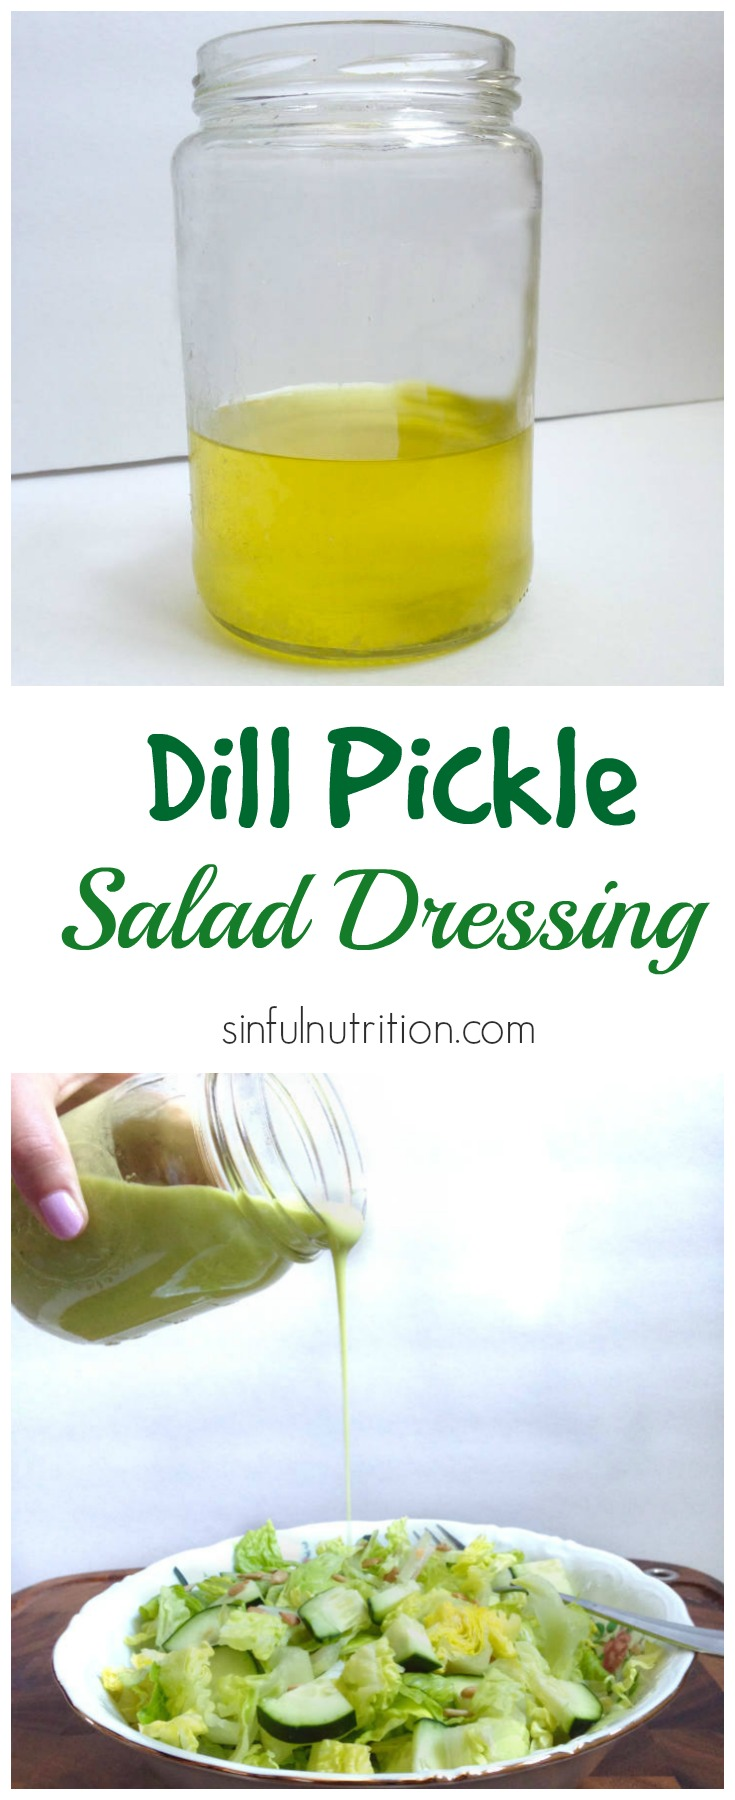 Calling all pickle lovers! A tangy and creamy dill pickle salad dressing recipe made with pickle juice, avocado, and olive oil. #paleo #vegan #glutenfree #healthy